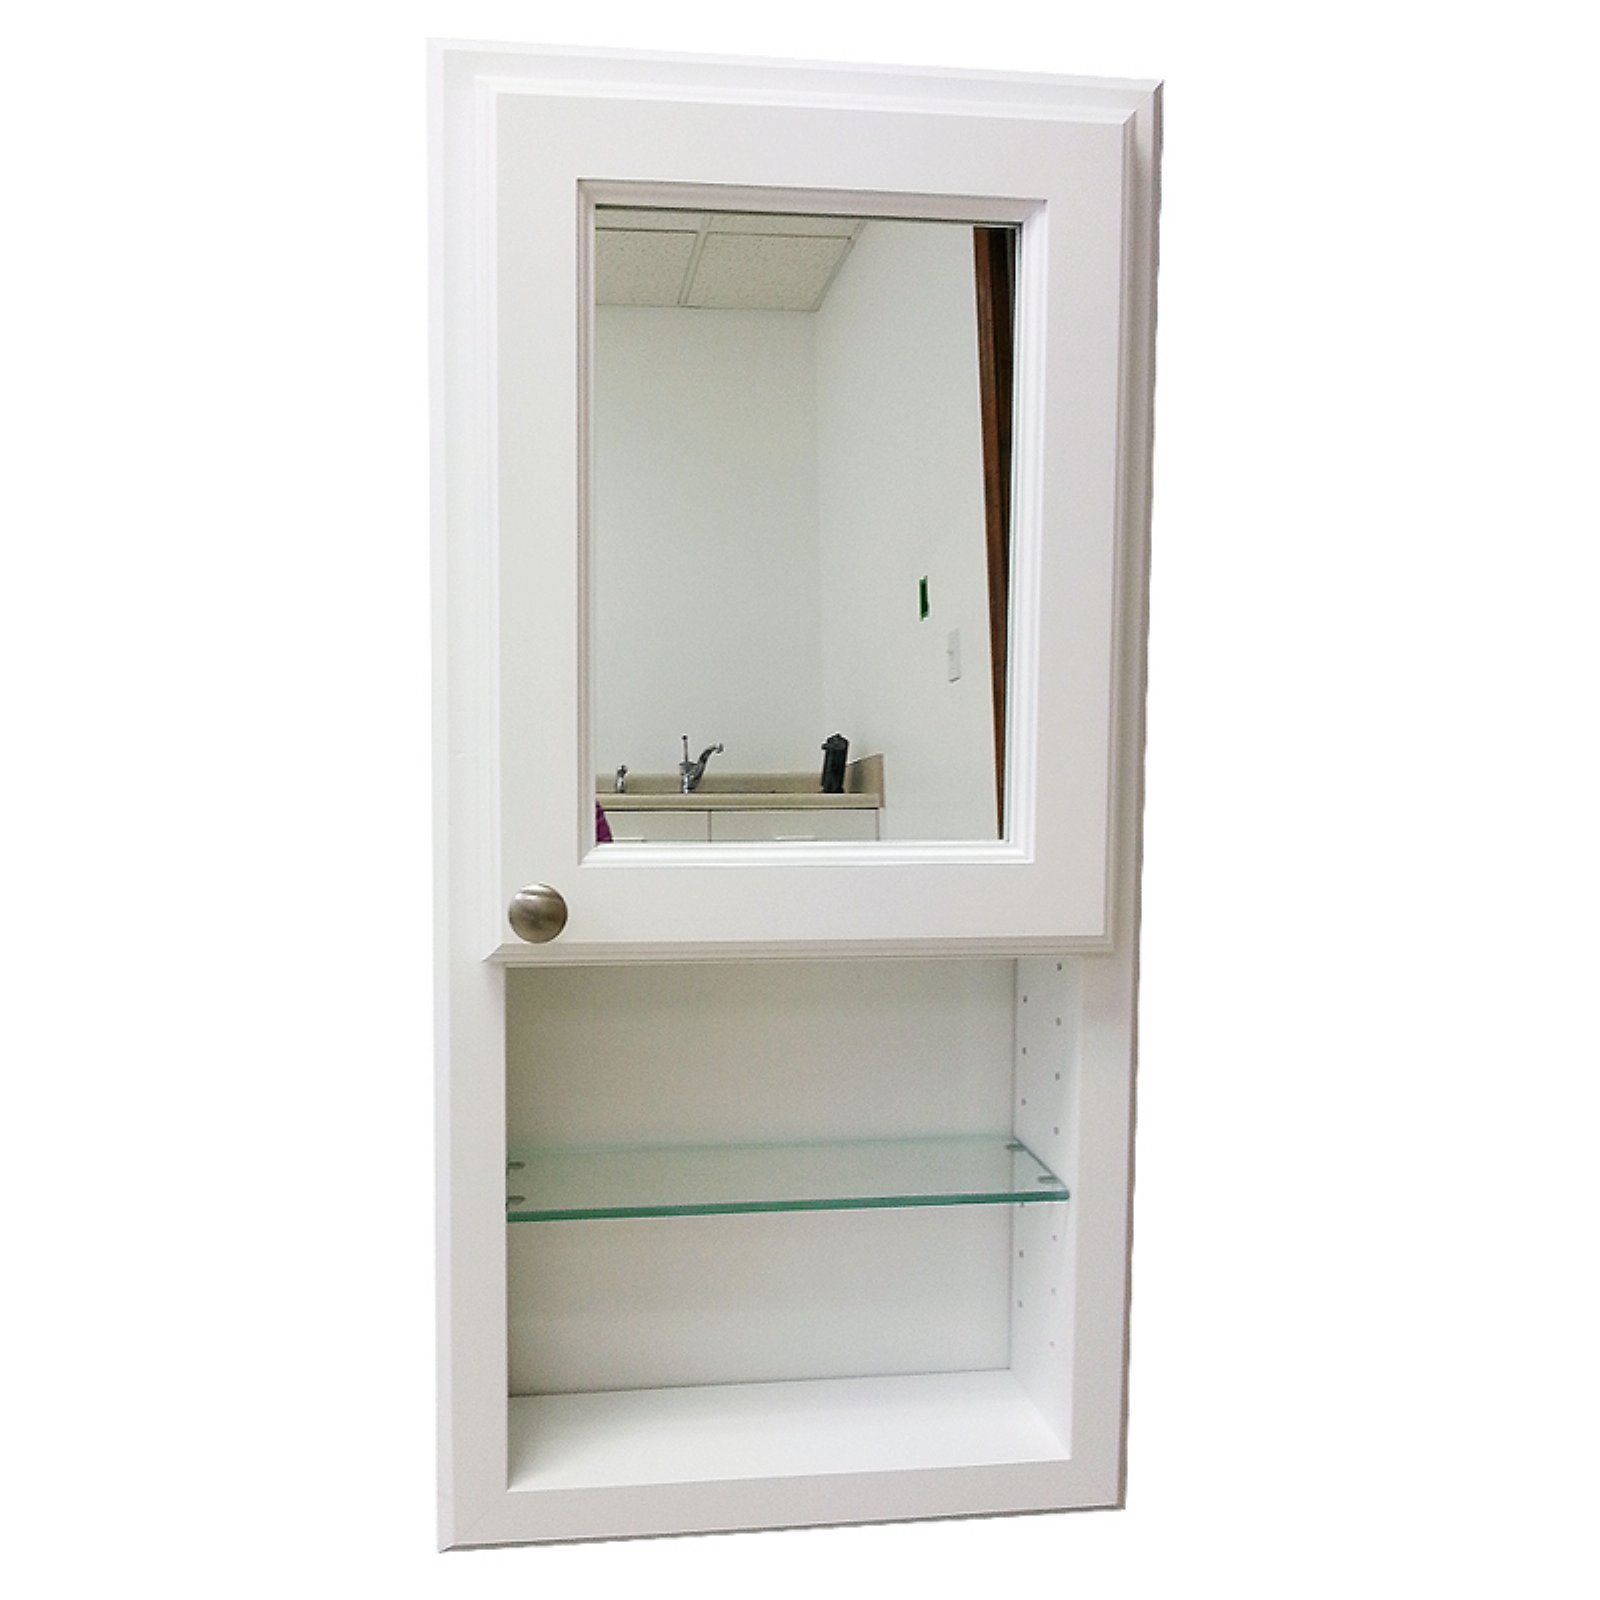 WG Wood Nash 15.5W x 31.5H in. Surface Mount Medicine Cabinet with Mirror Door by